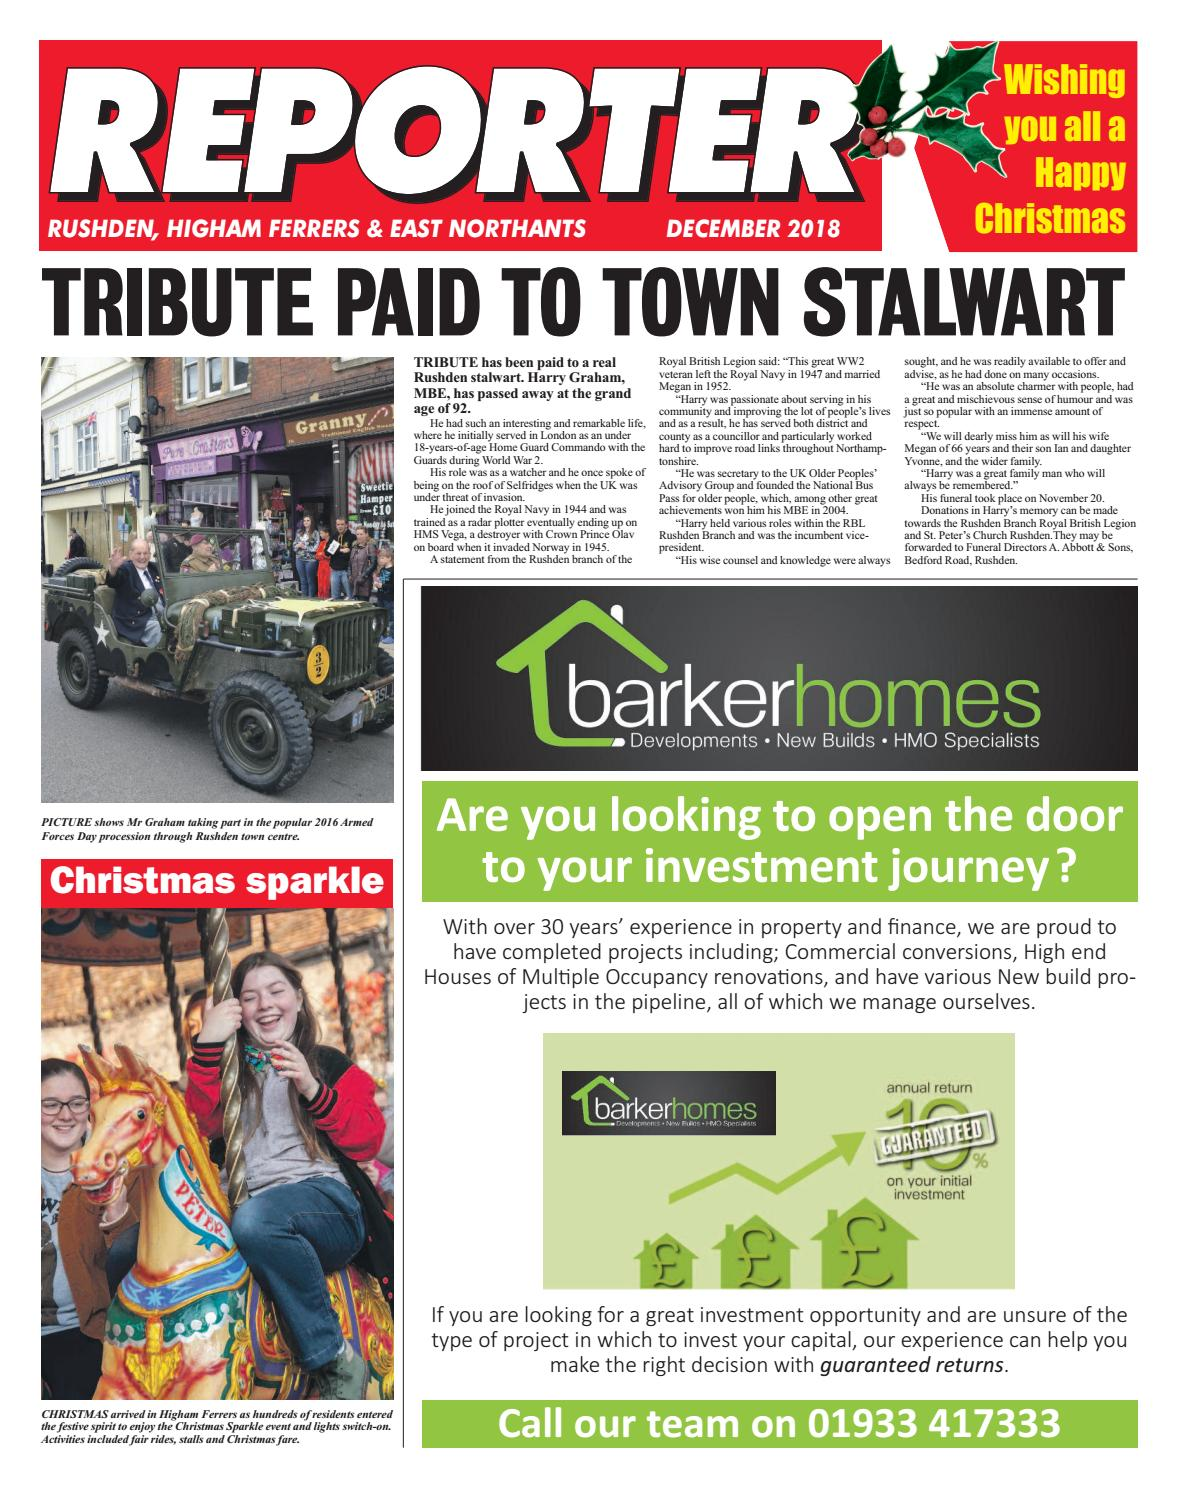 EAST NORTHANTS REPORTER DEC 18 by Rosetta Publishing issuu